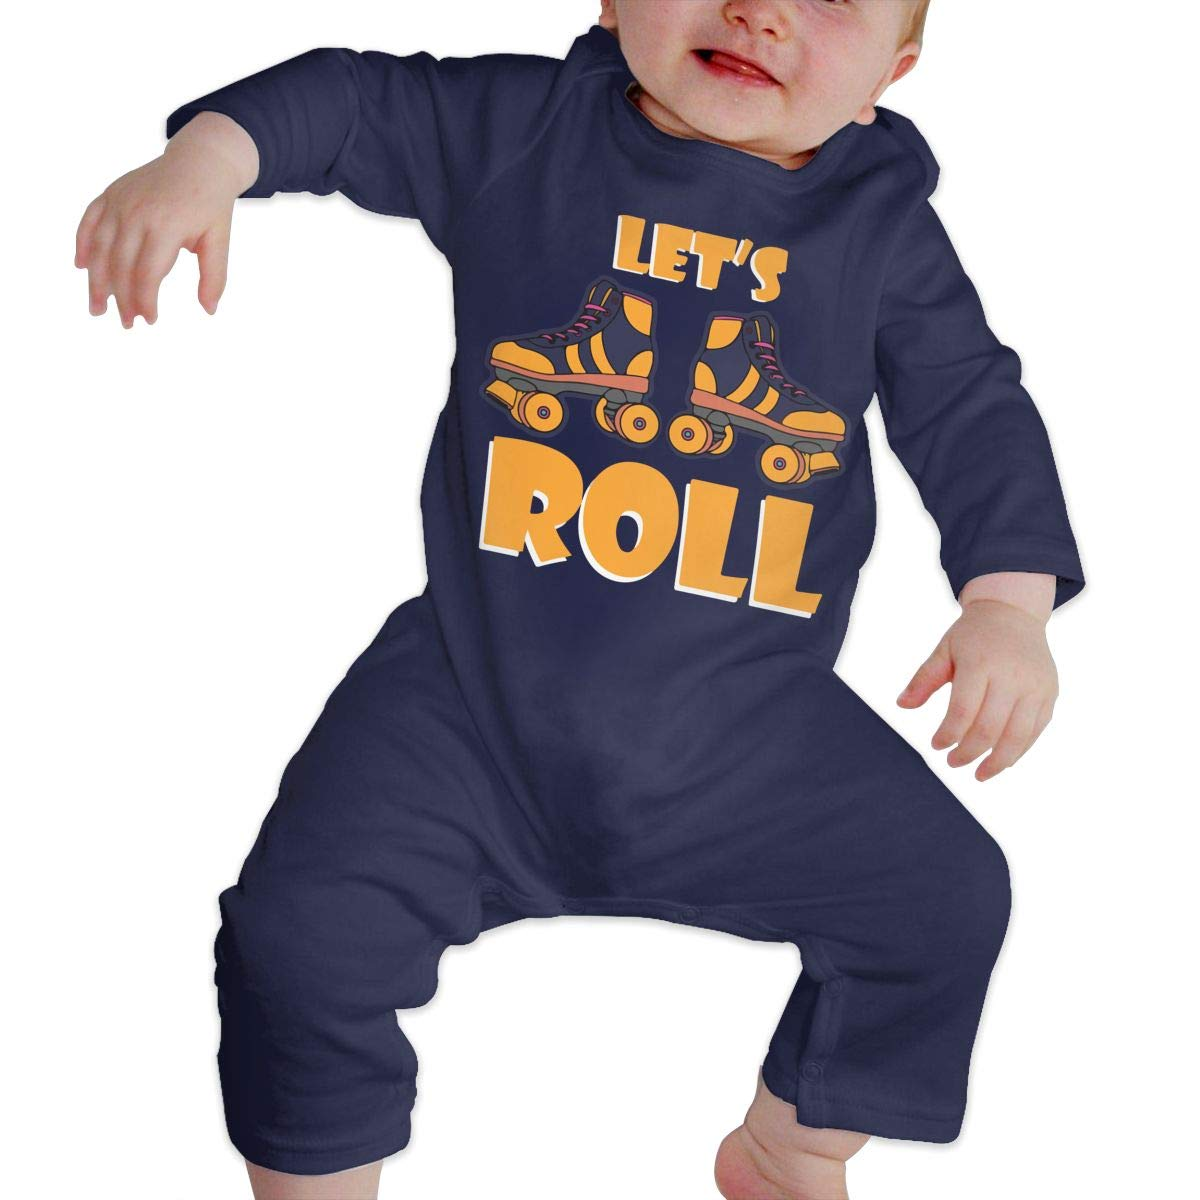 LBJQ8 Roller Skating Baby Infant Girls Organic Cotton Coveralls Jumpsuits